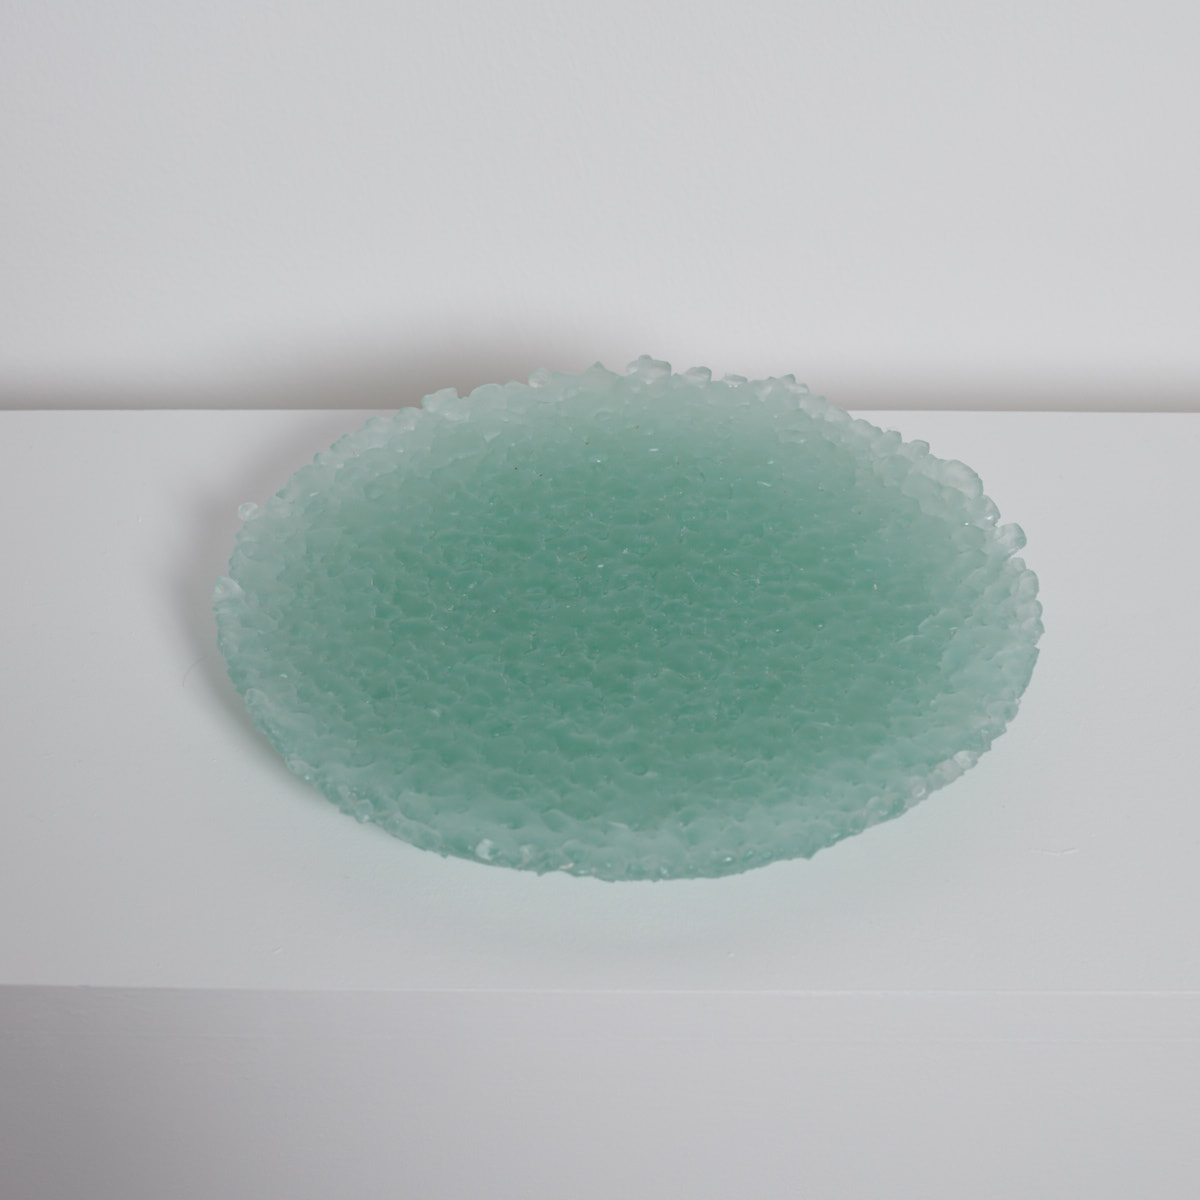 Copy of RECYCLED GLASS PLATTER MEDIUM SR02